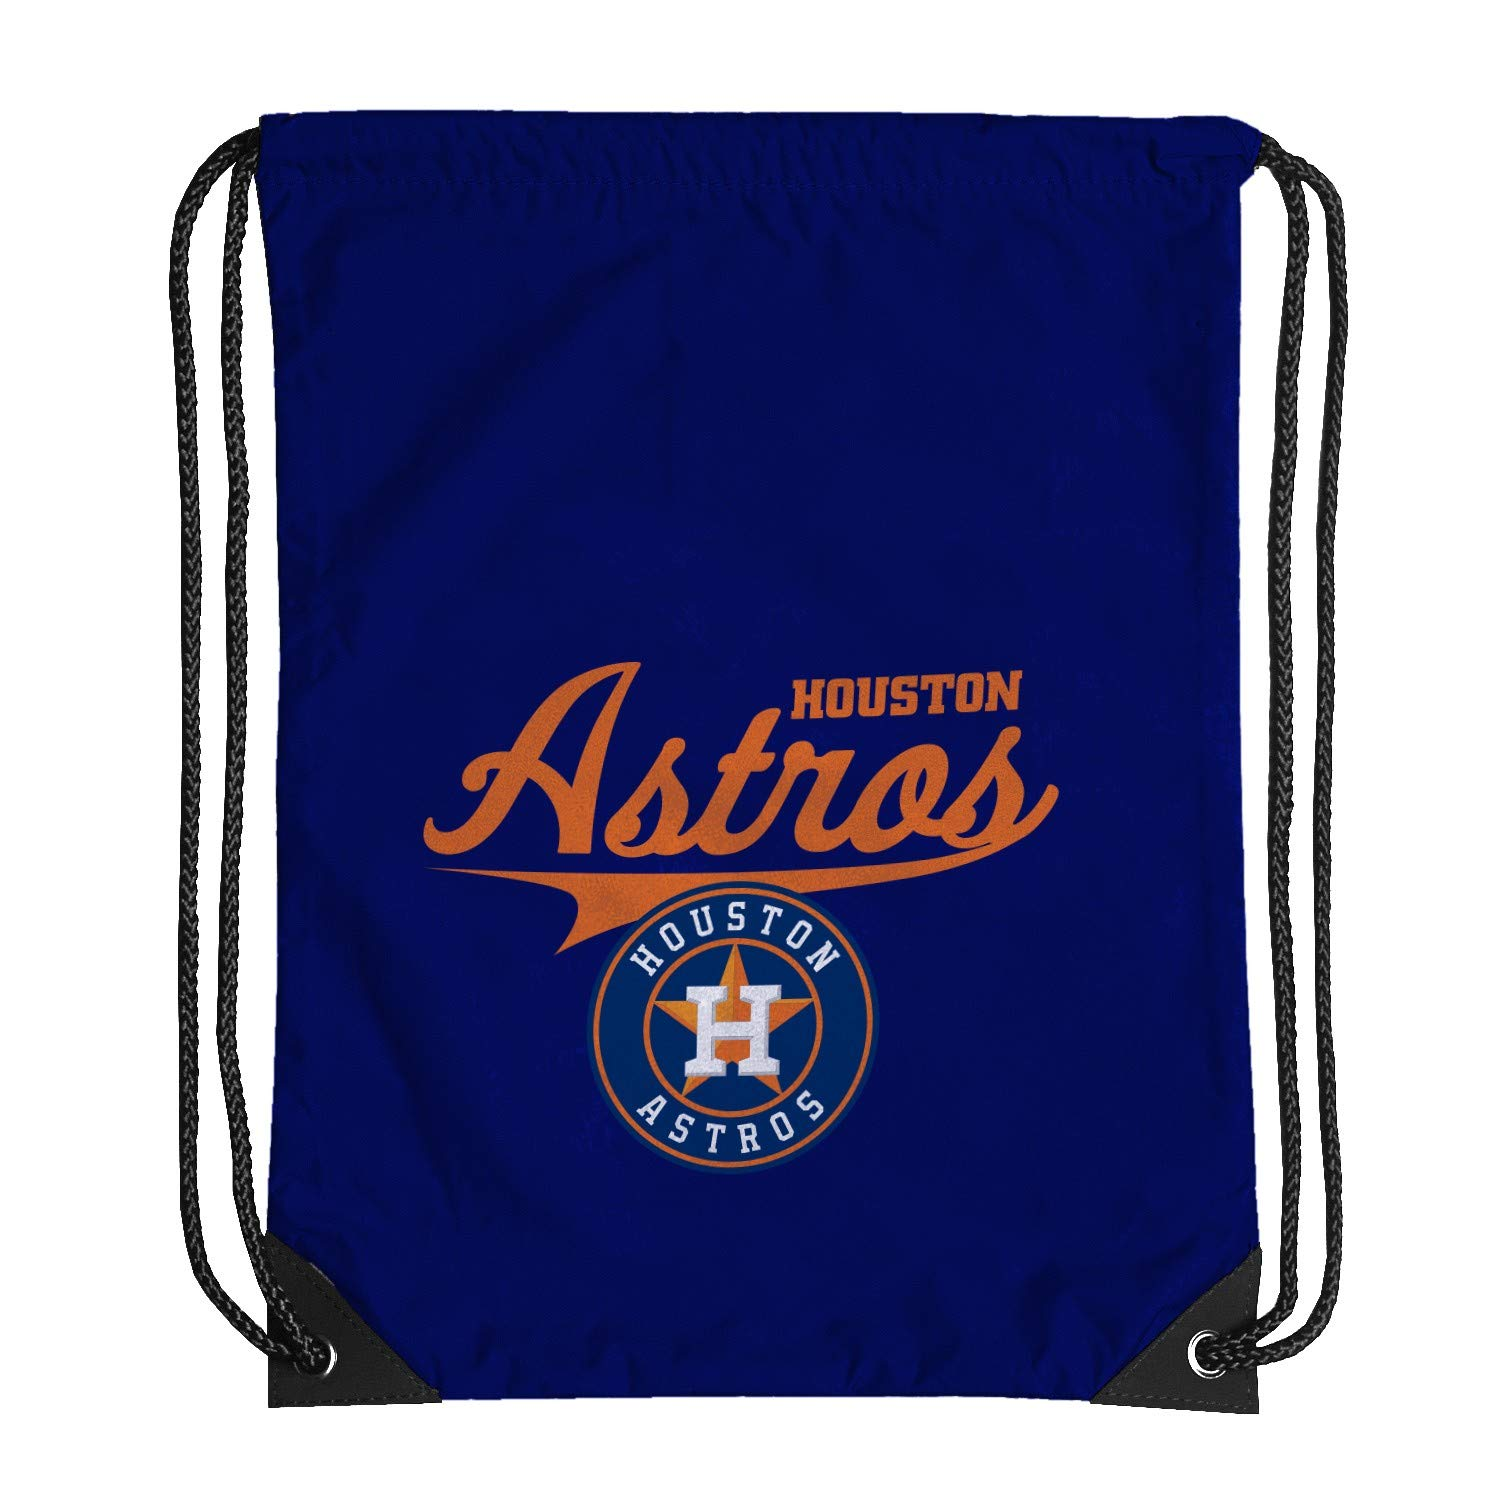 Northwest Houston Astros MLB Team Spirit Backsack B07DL2H17D